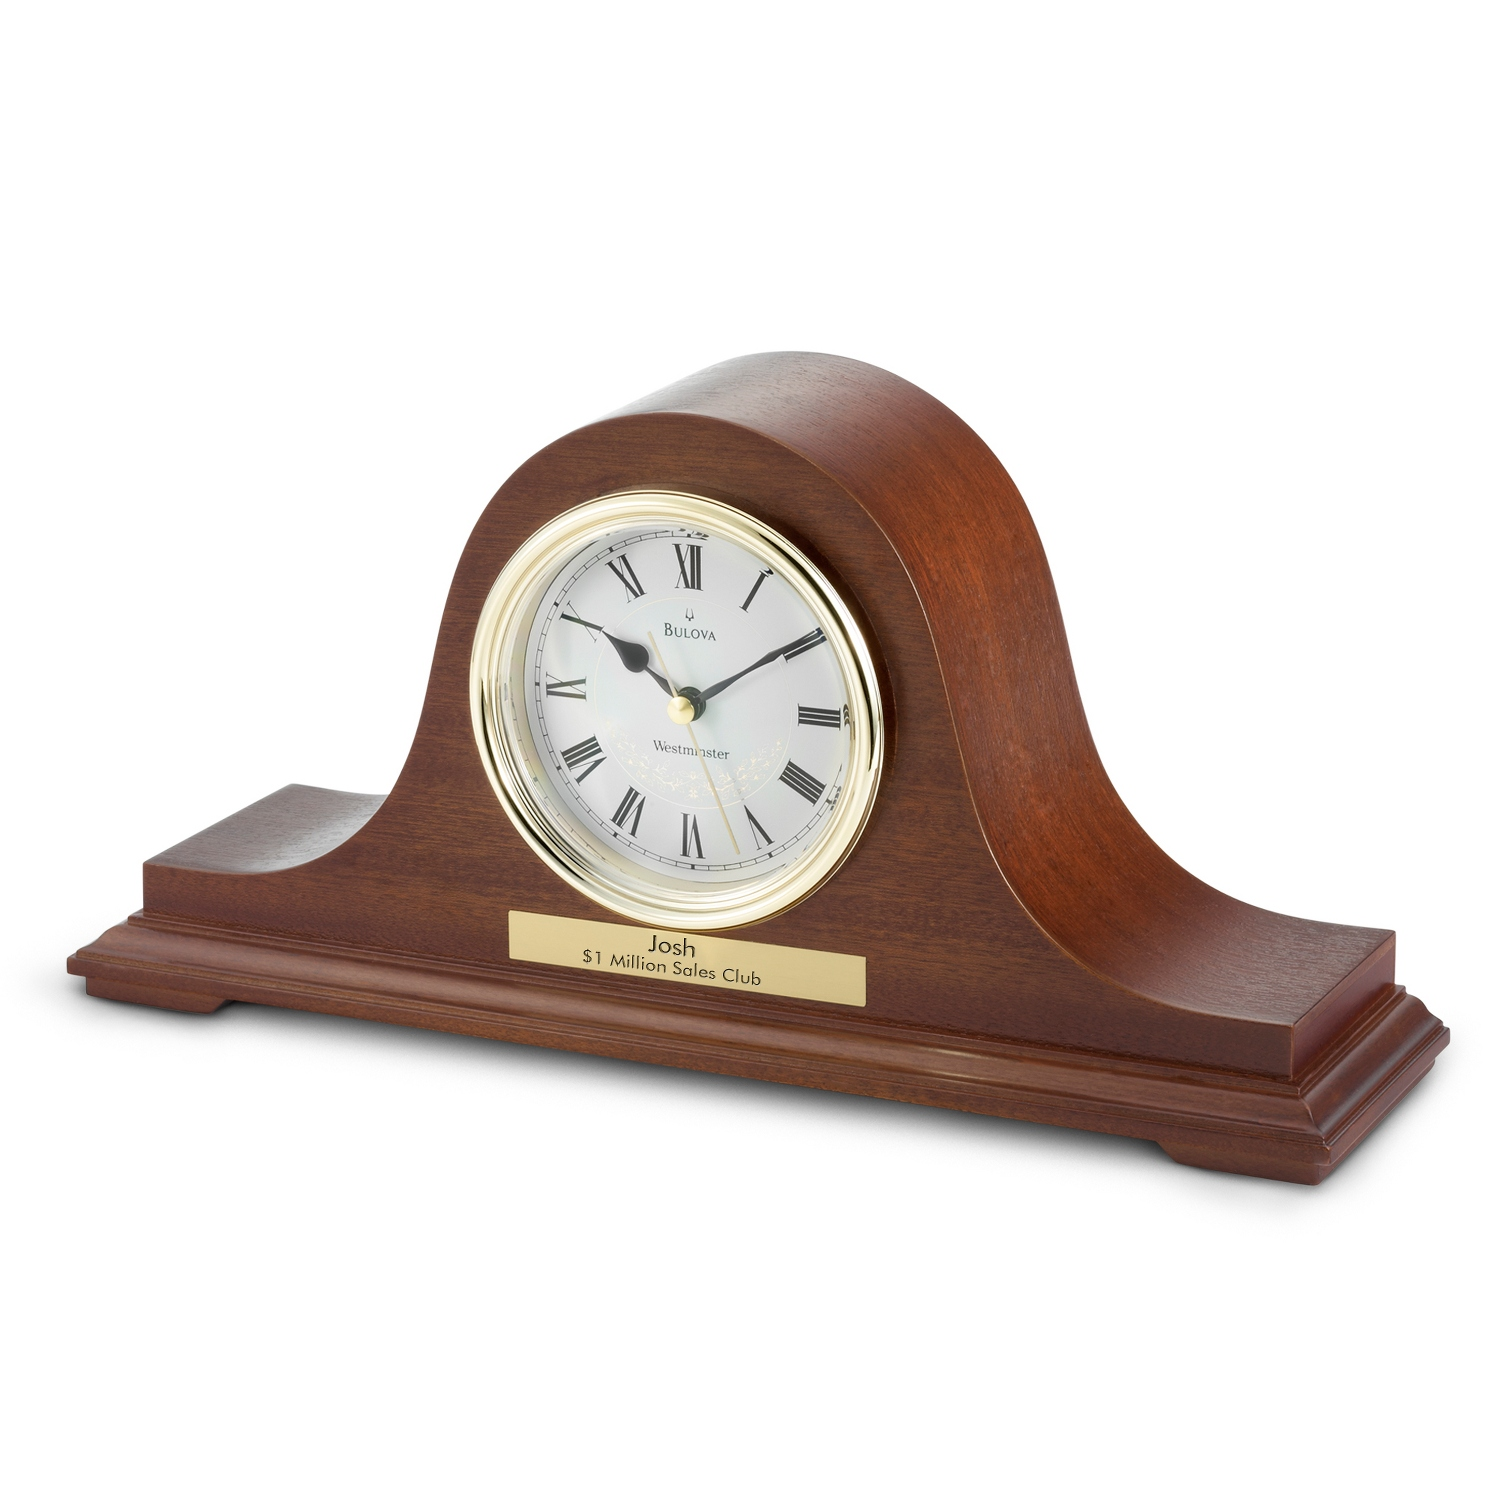 Personalized bulova clocks at things remembered bulova mahogany mantel clock jeuxipadfo Images